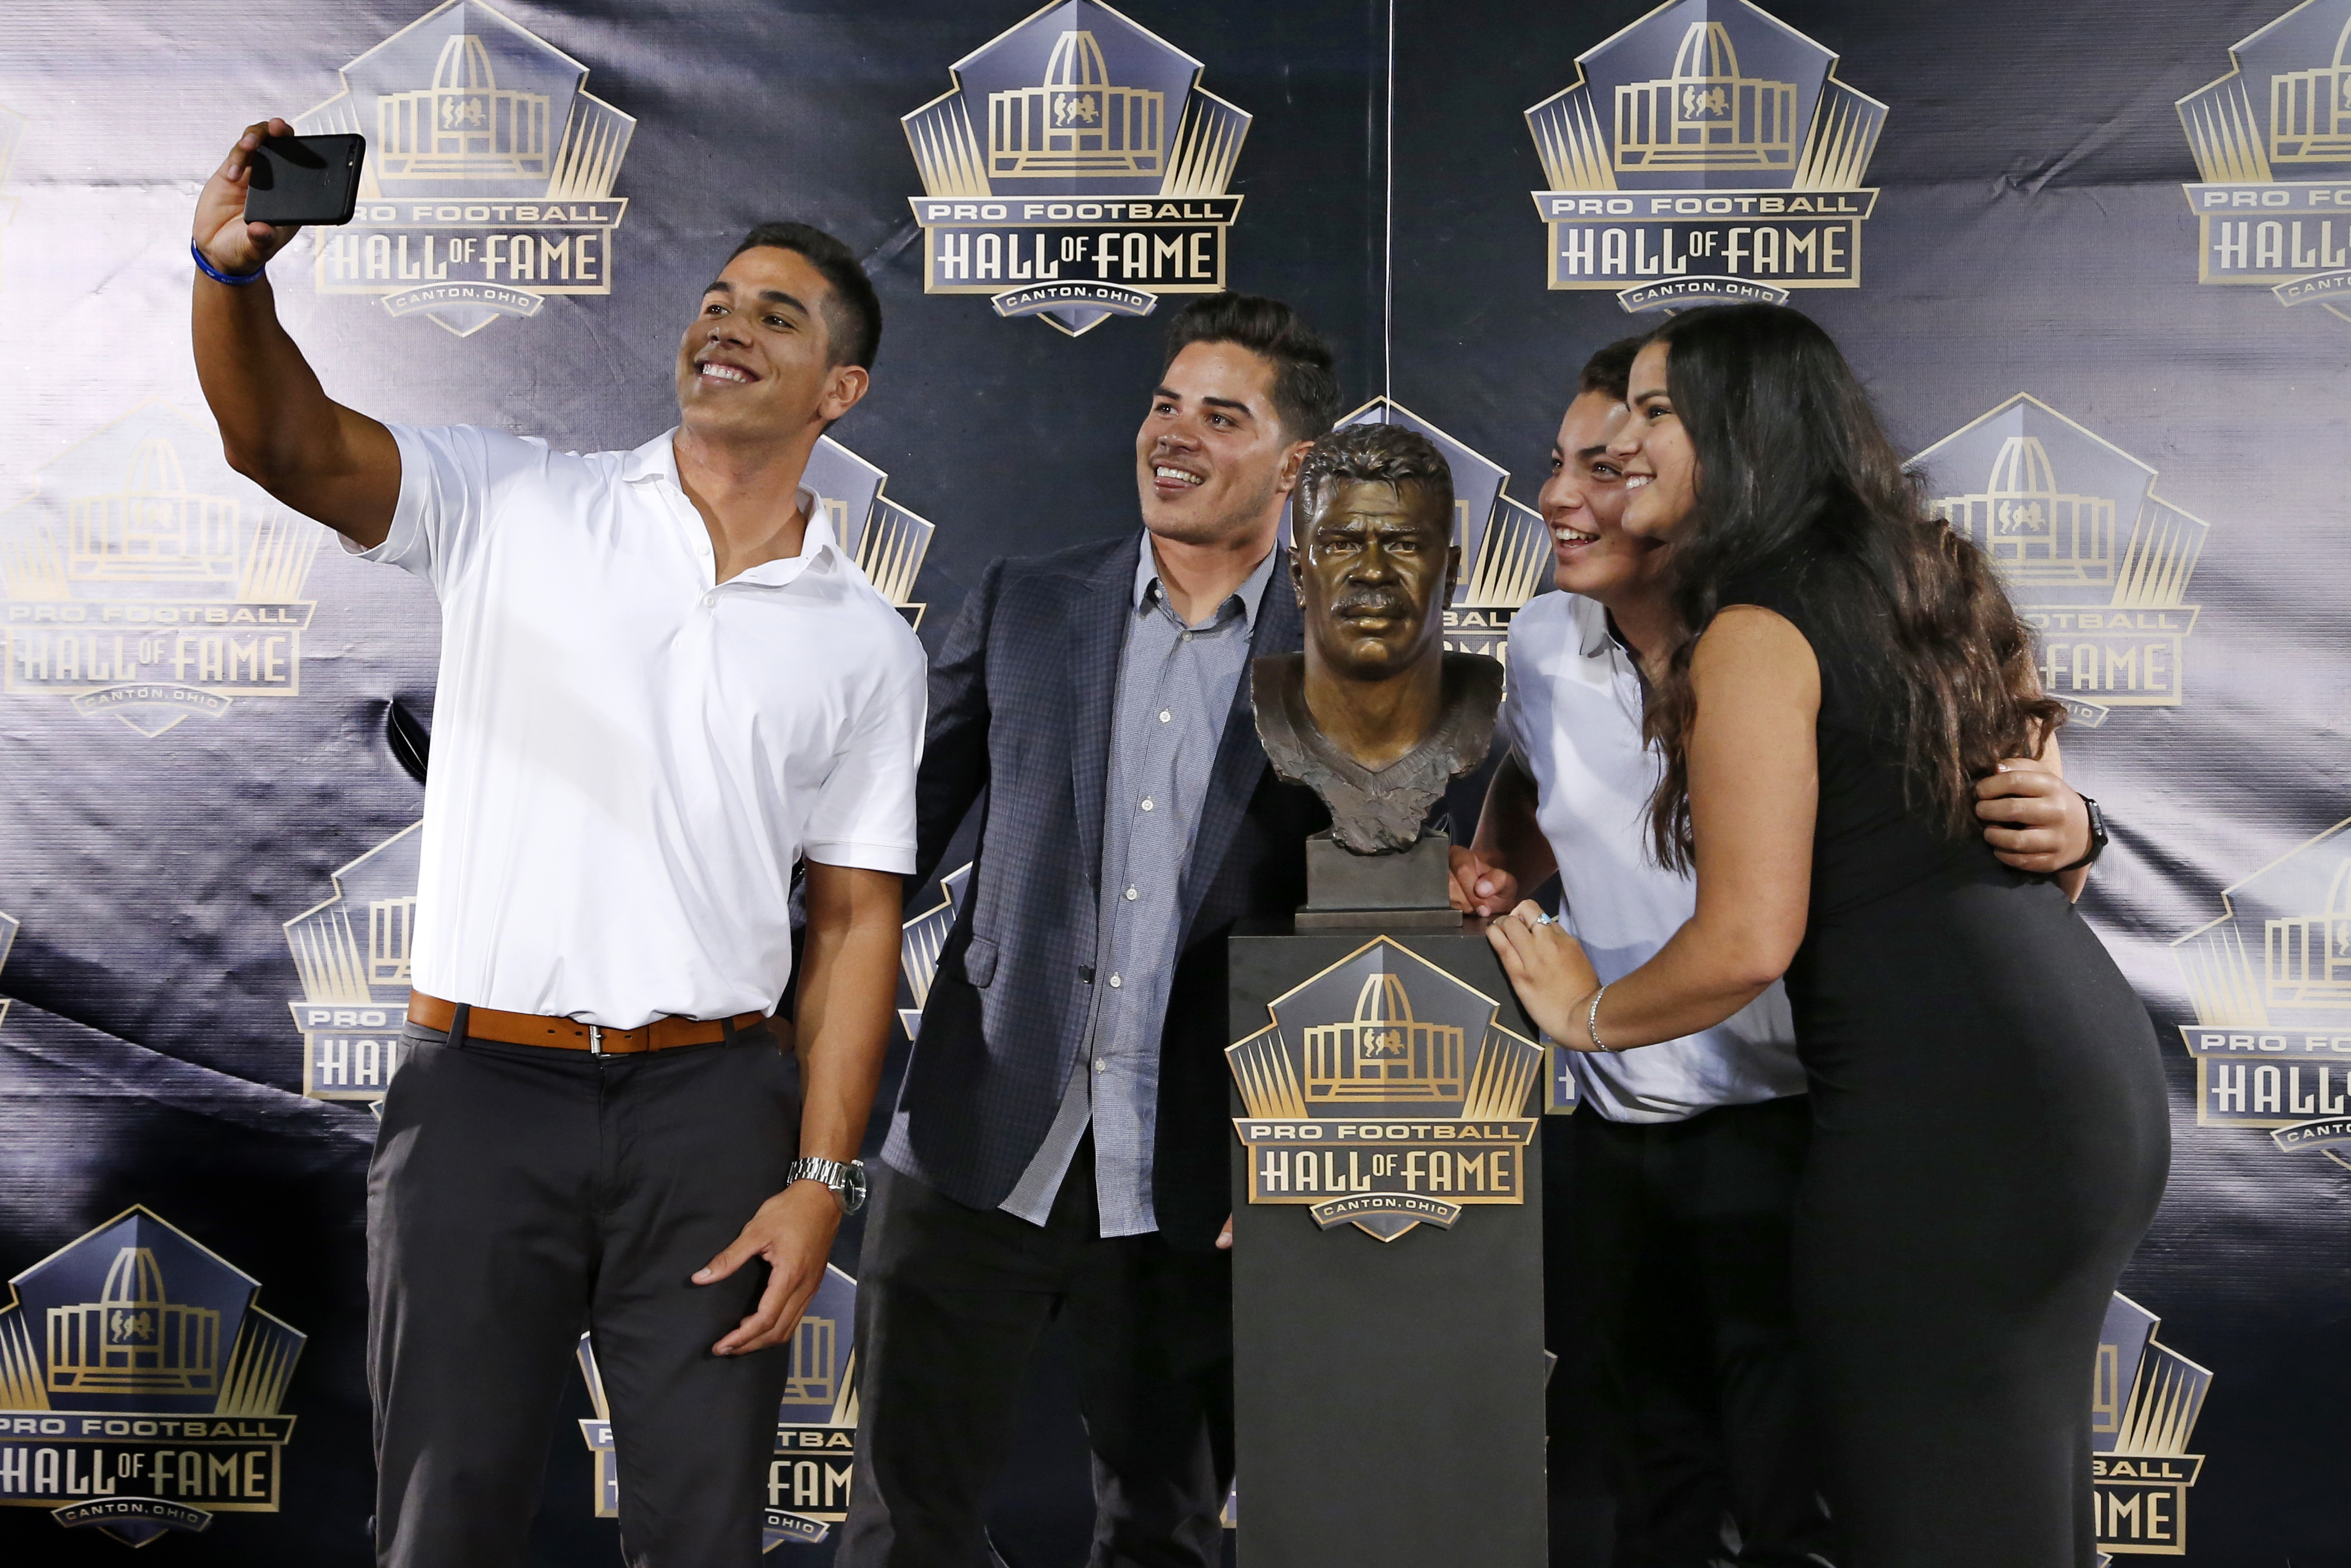 Children of former NFL player Junior Seau, from left, Jake, Tyler, Hunter and Sydney pose for a selfie with the bust of their late father, during inductions at the Pro Football Hall of Fame on Saturday, Aug. 8, 2015, in Canton, Ohio.  (AP Photo/Gene J. Pu